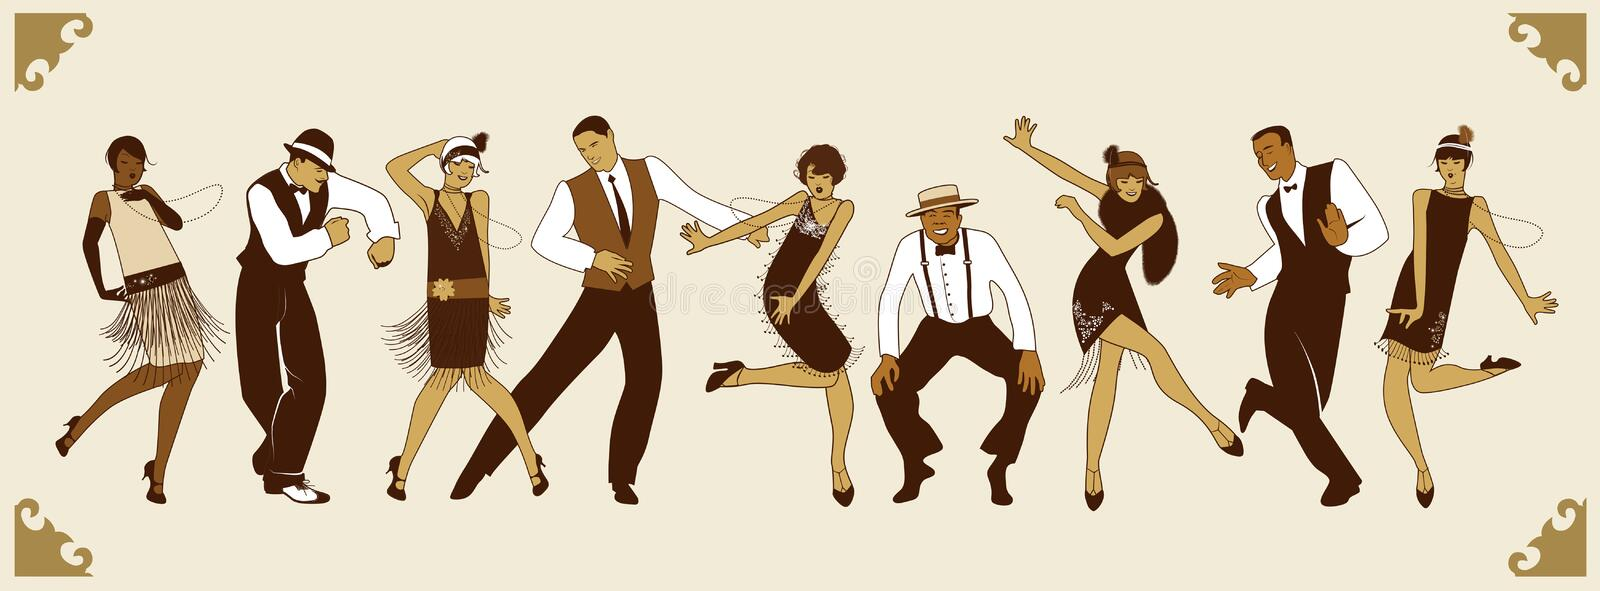 Charleston Party Grupo de gente joven que baila Charleston libre illustration